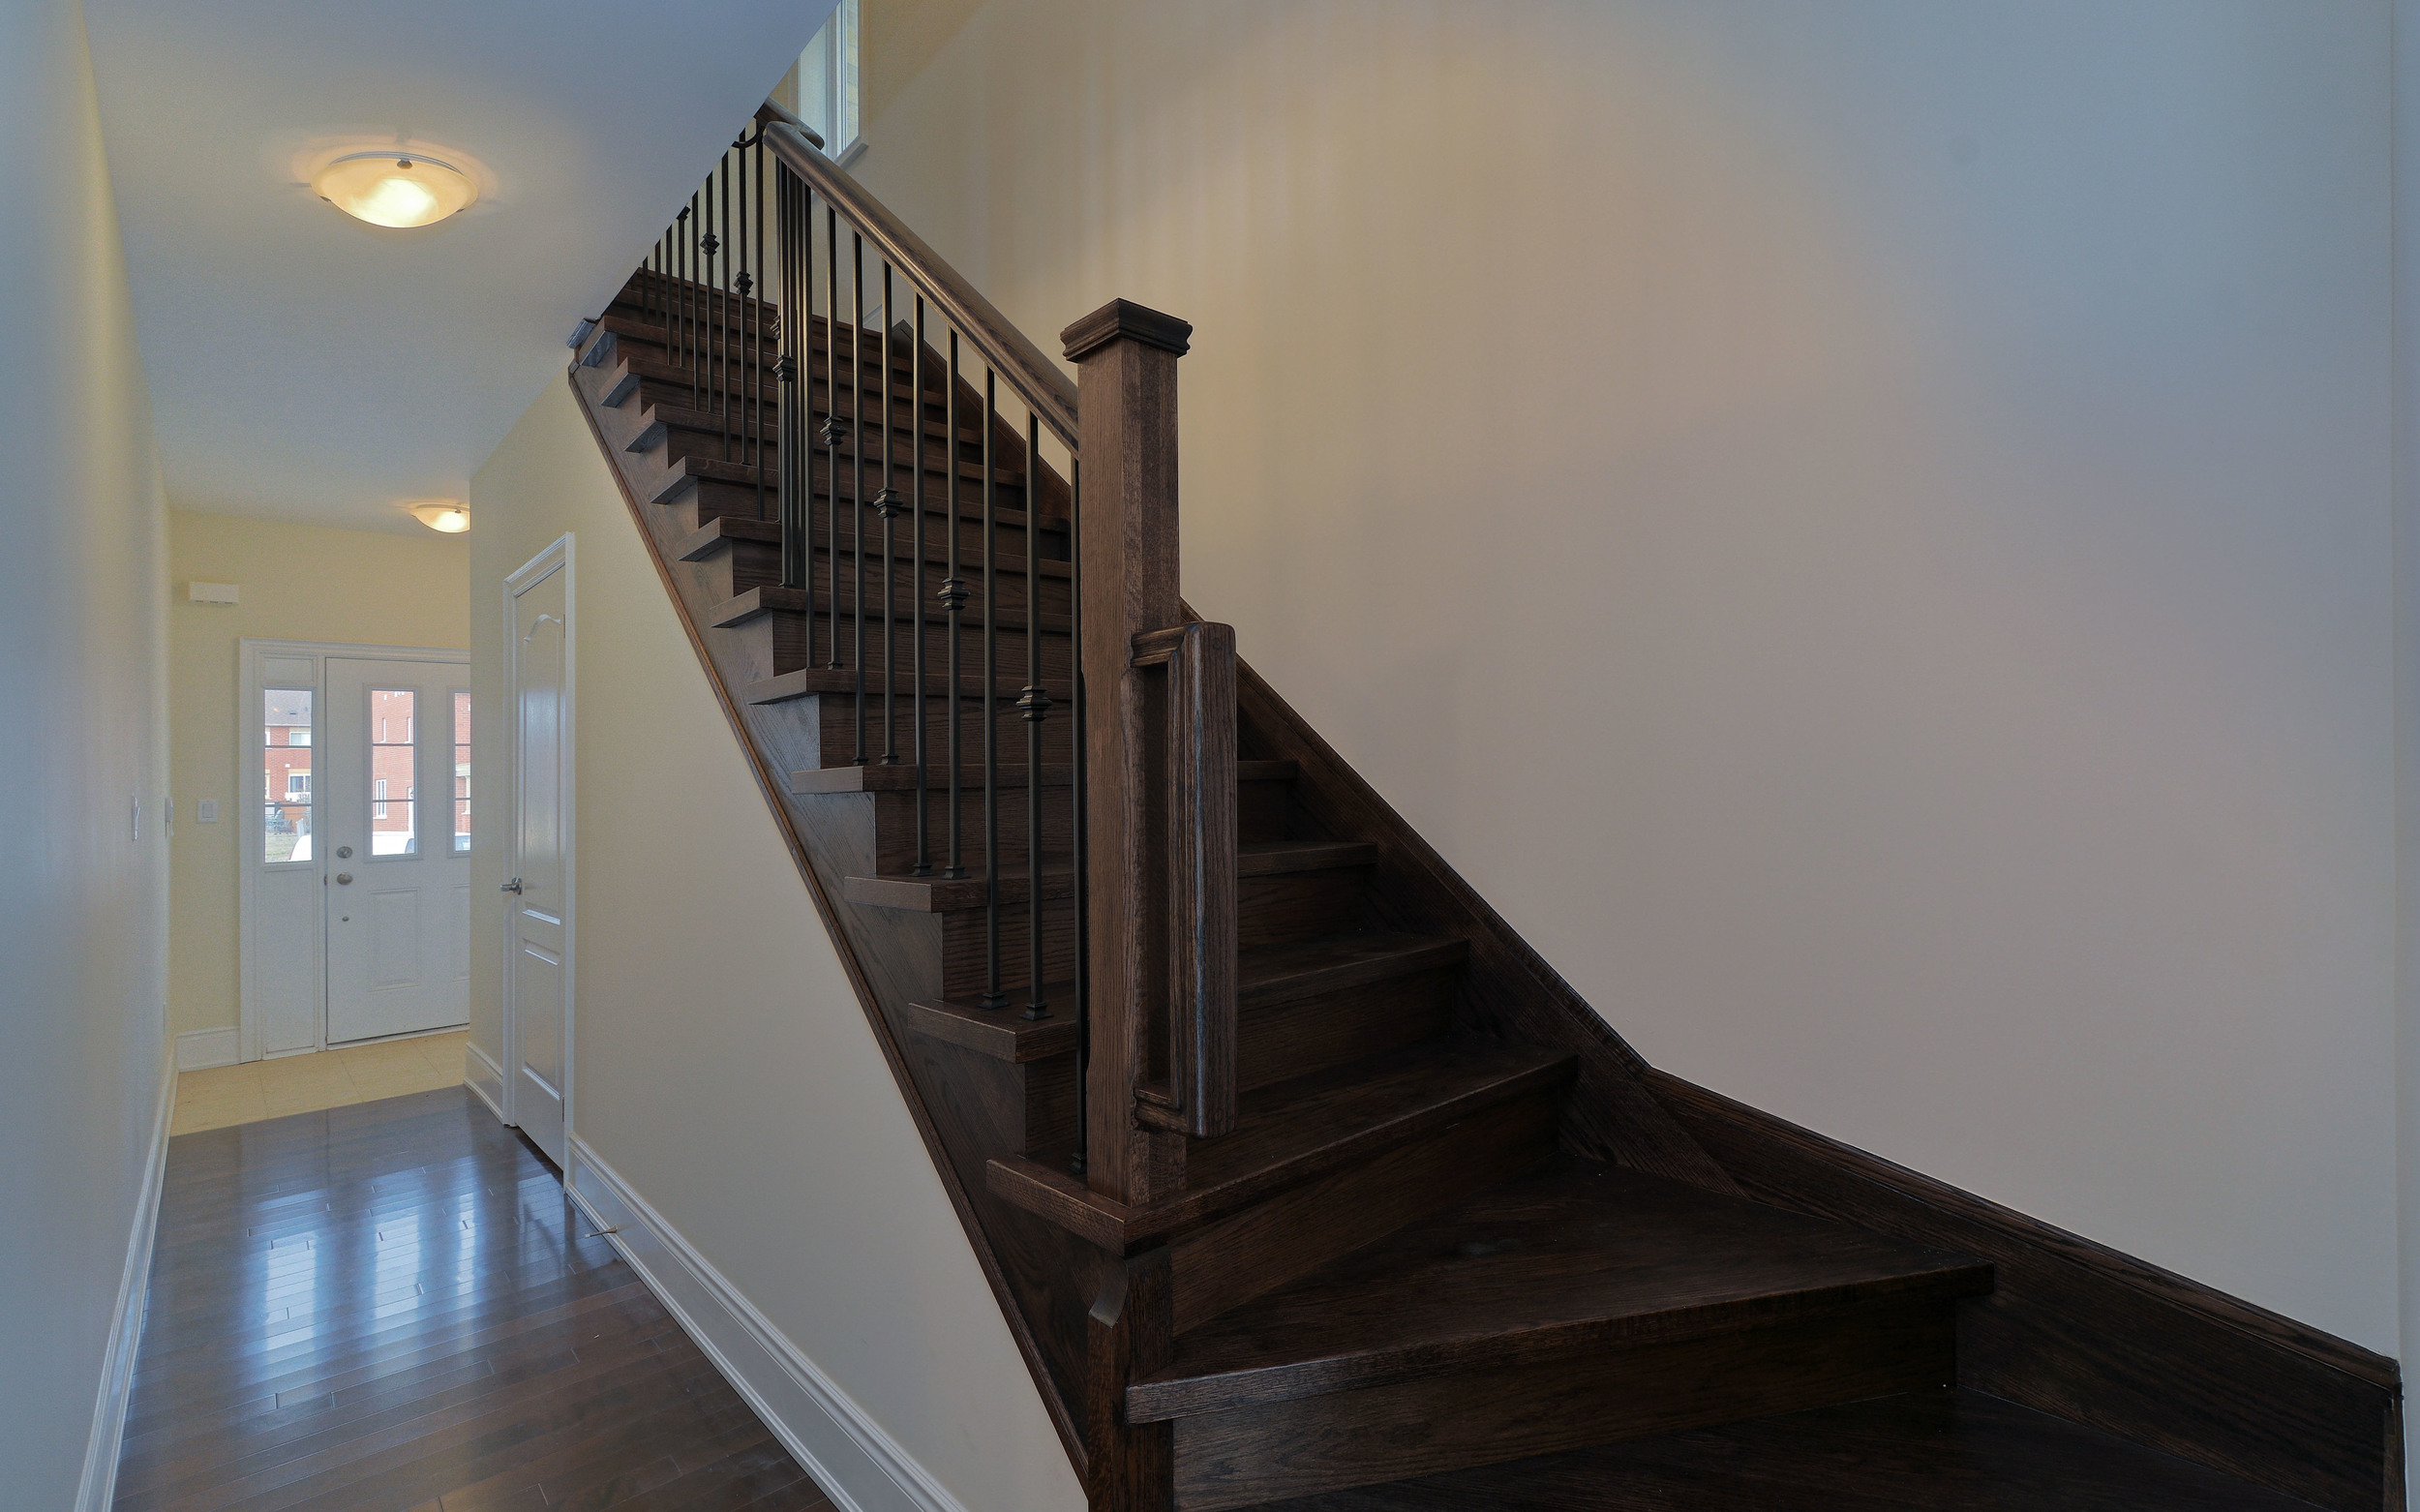 004-Foyer and Staircase.jpg